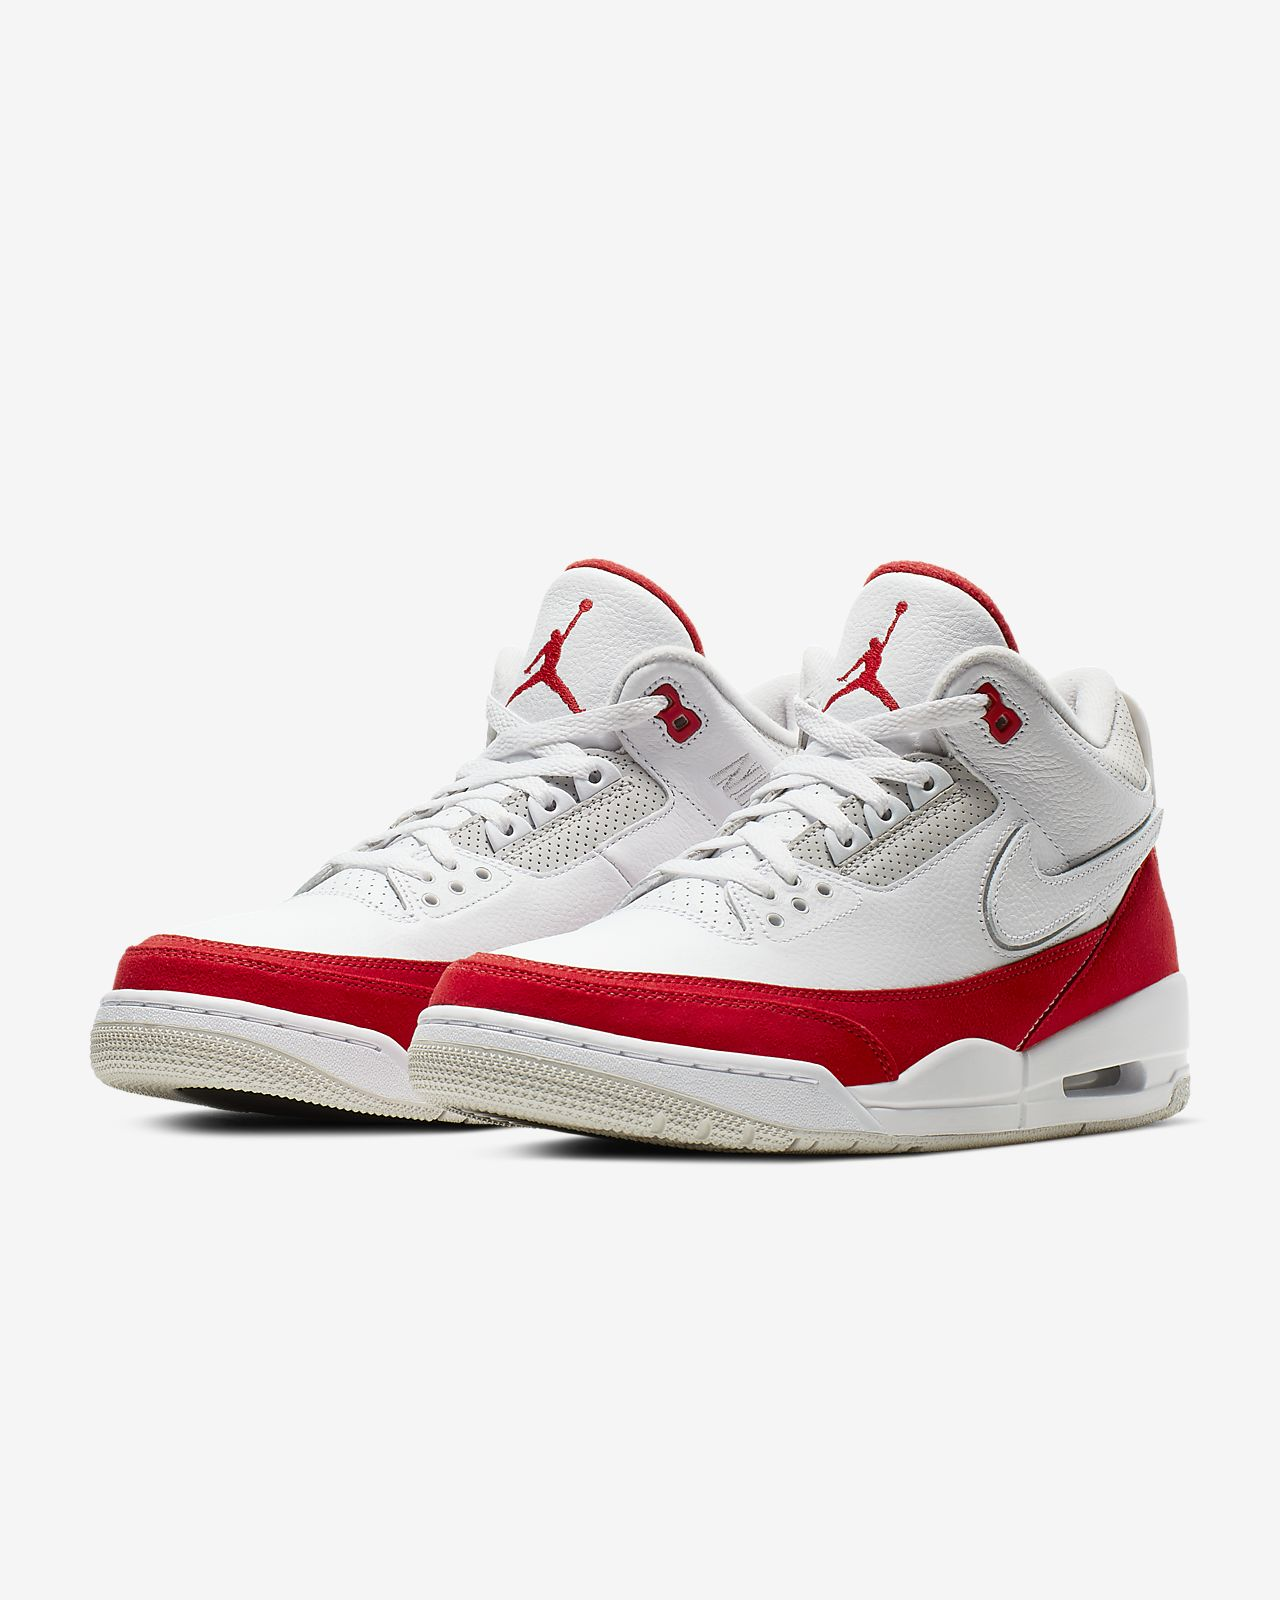 Air Jordan 3 Retro TH SP Men's Shoe